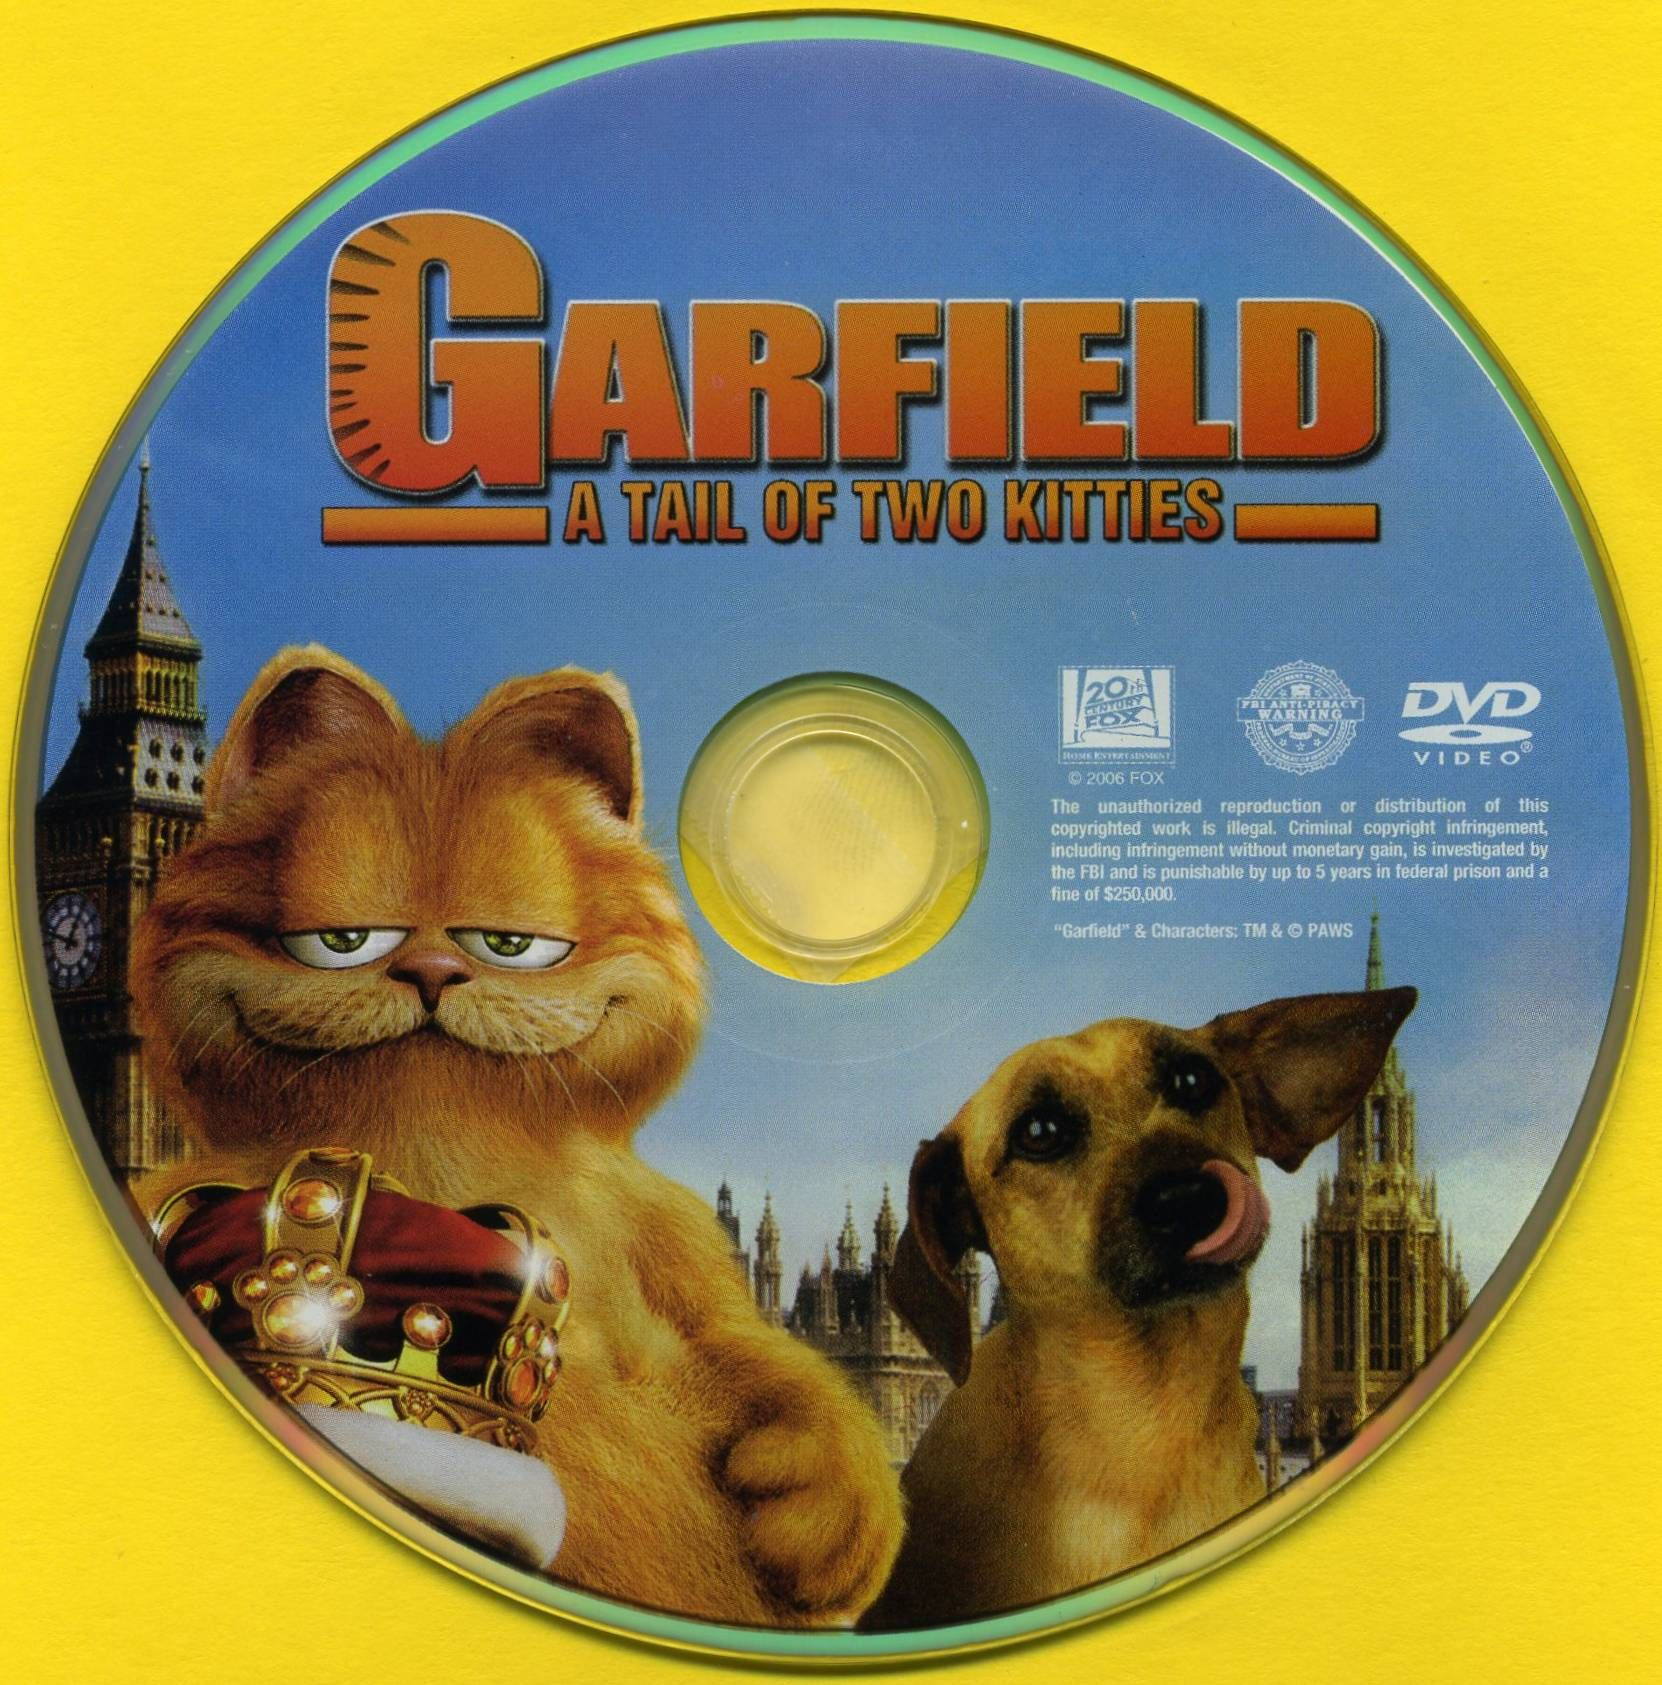 Garfield A Tale Of Two Kitties Dvd Cd Dvd Covers Cover Century Over 500 000 Album Art Covers For Free